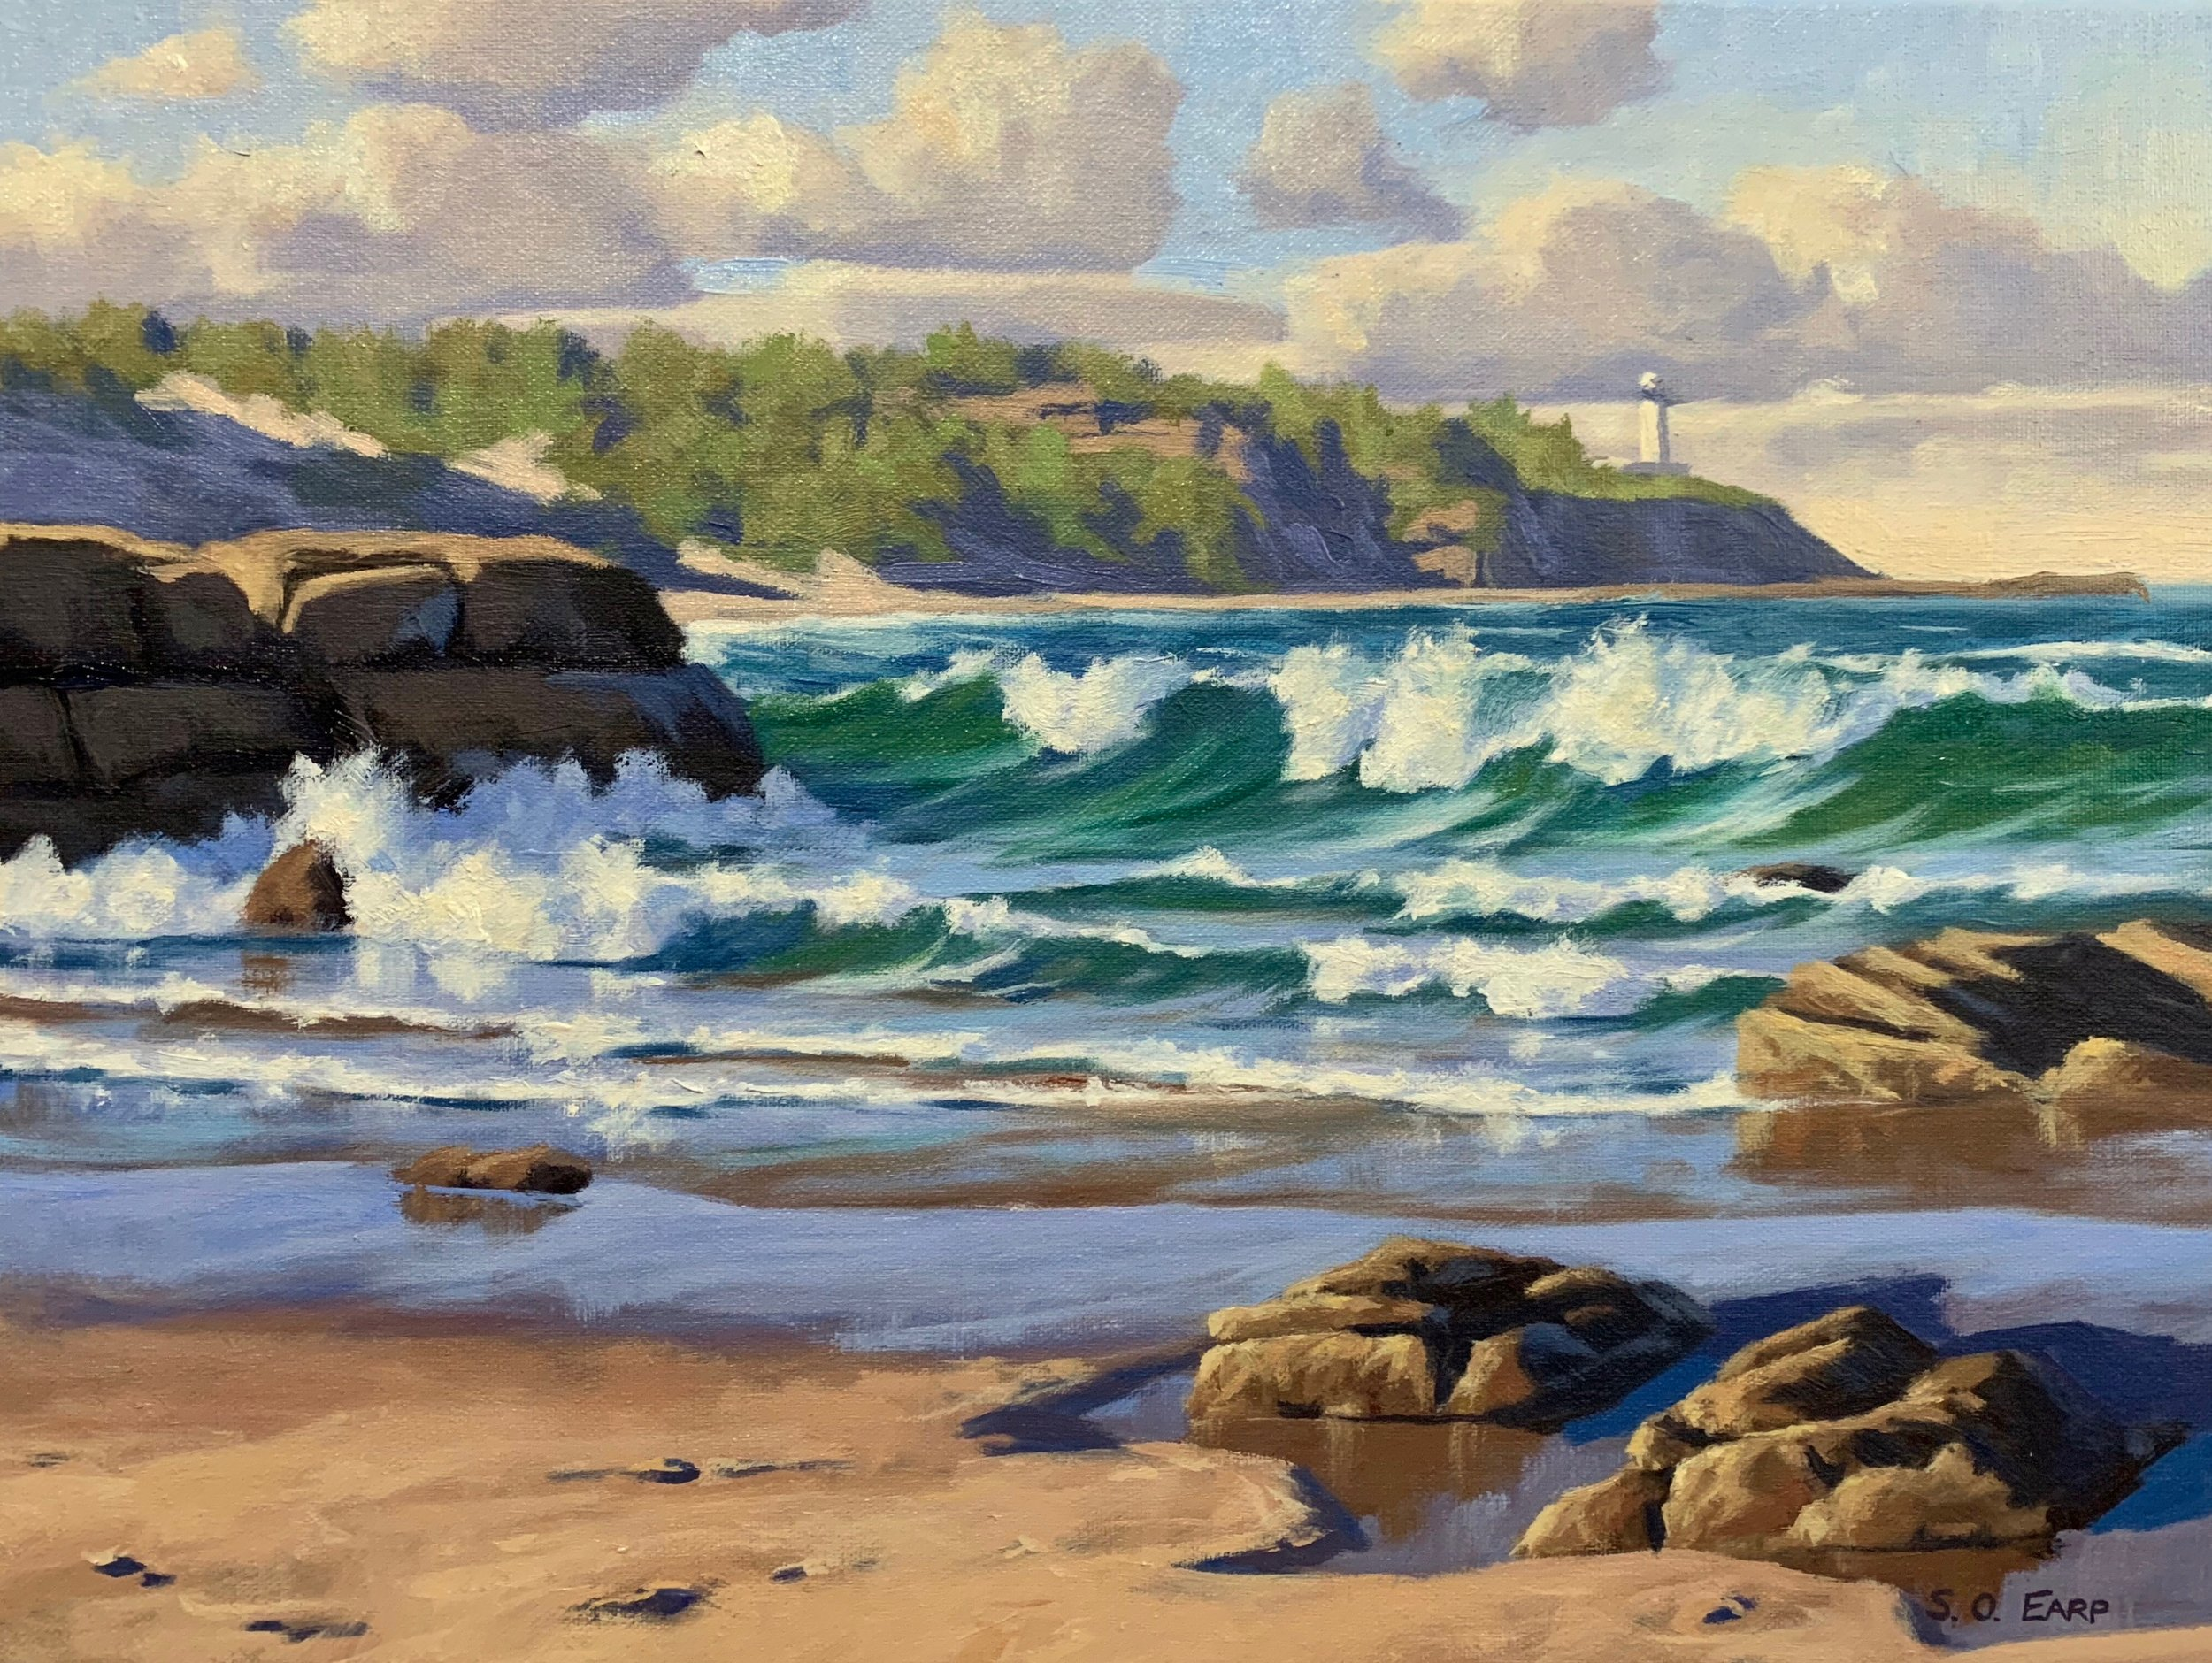 Norah Head, Australia, 40cm x 50cm, oil on canvas.